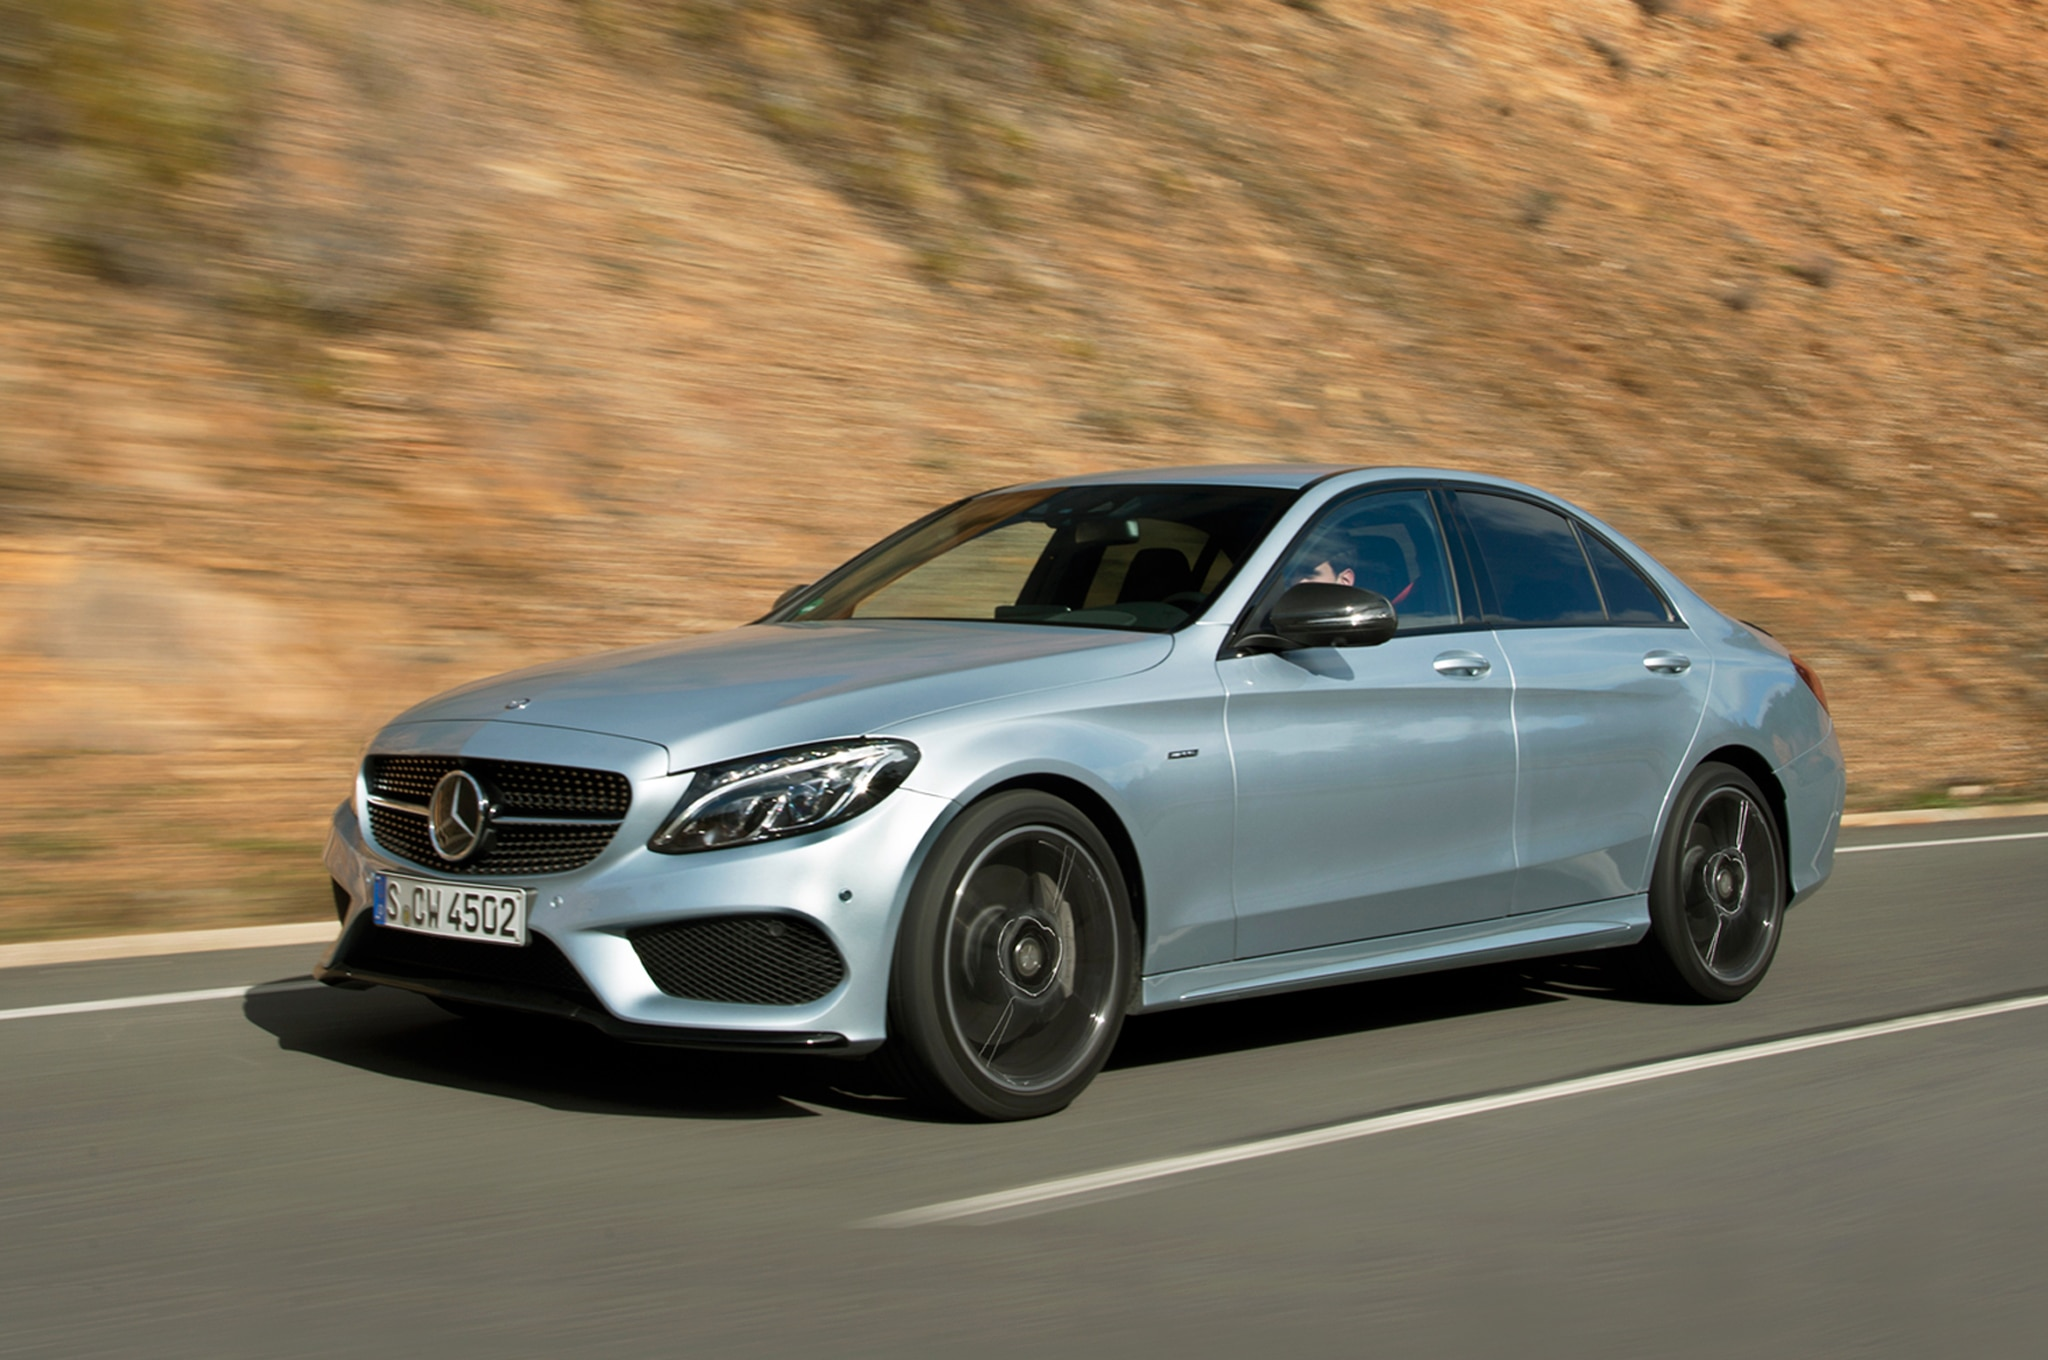 https://st.automobilemag.com/uploads/sites/11/2015/02/2016-Mercedes-Benz-C450-AMG-4Matic-front-three-quarter-in-motion-031.jpg